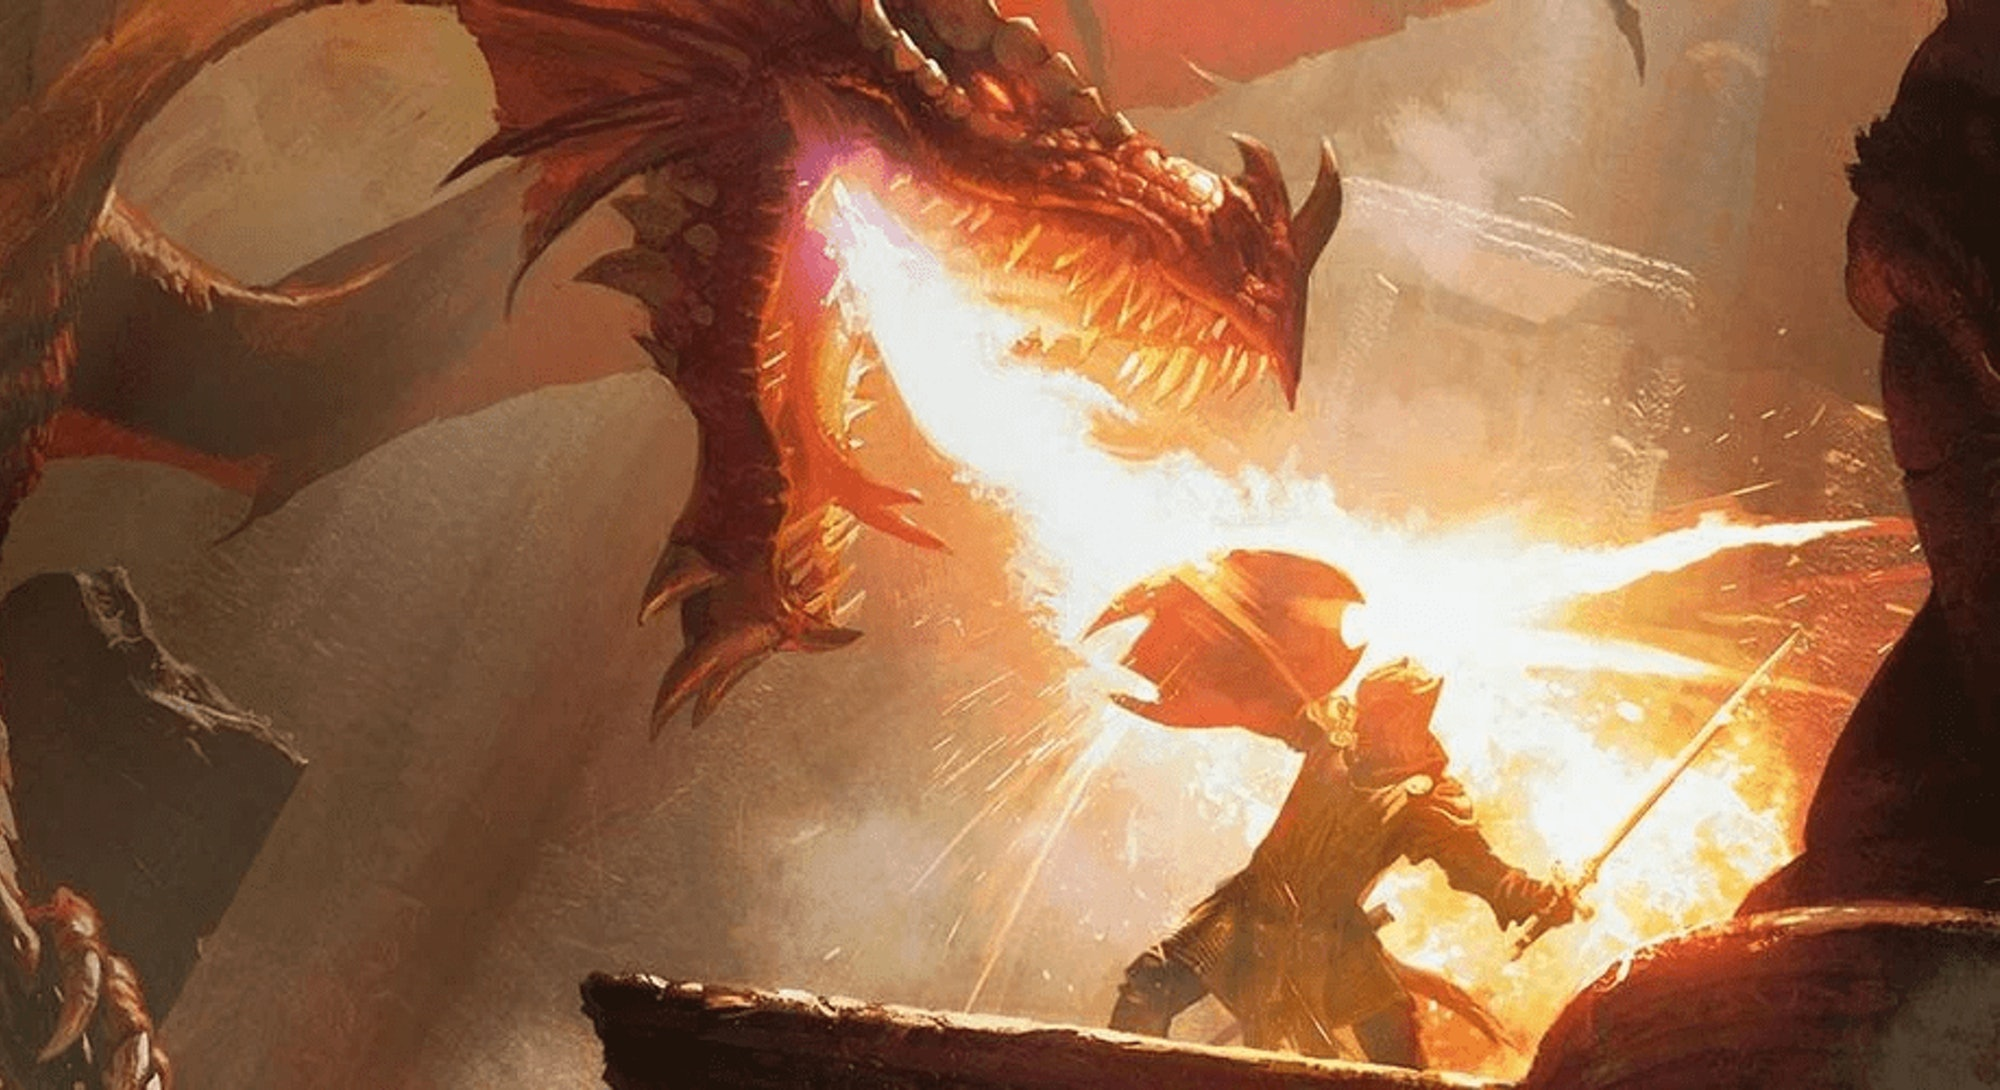 dragon breathing fire at adventurer holding shield in dungeons and dragons art